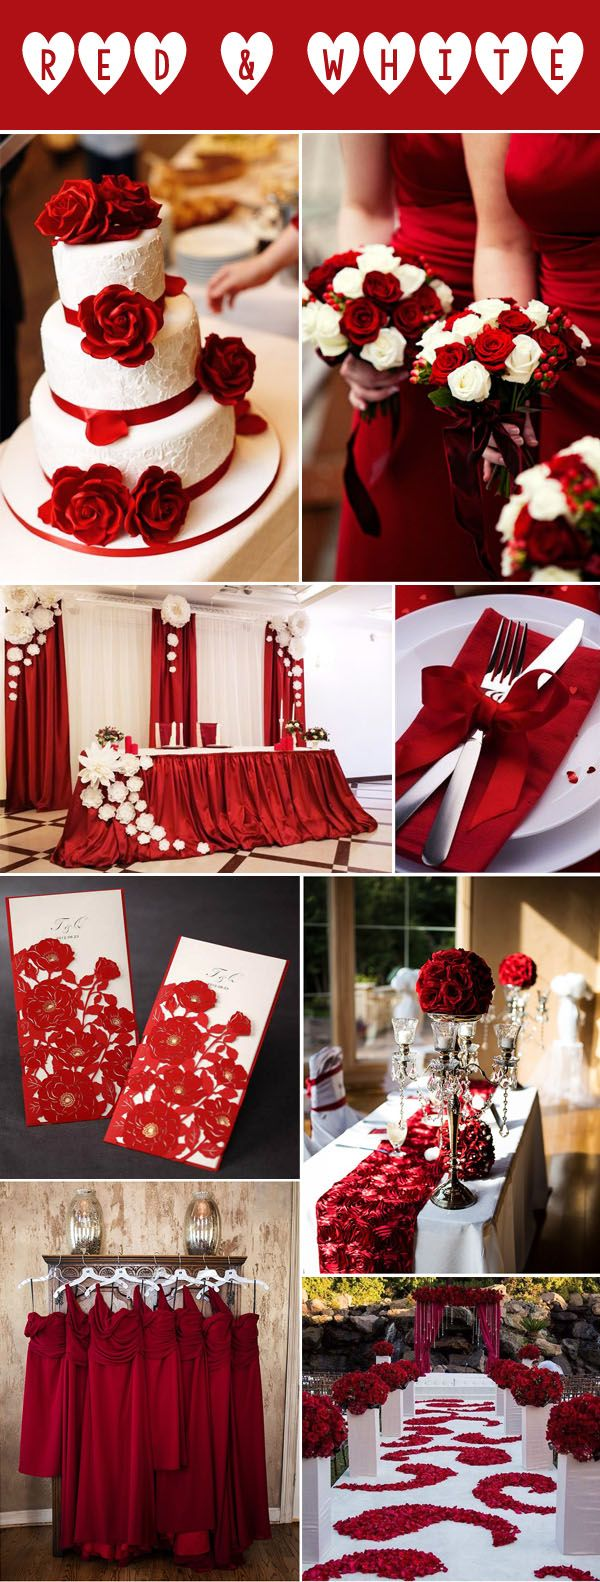 40 Inspirational Classic Red And White Wedding Ideas Red